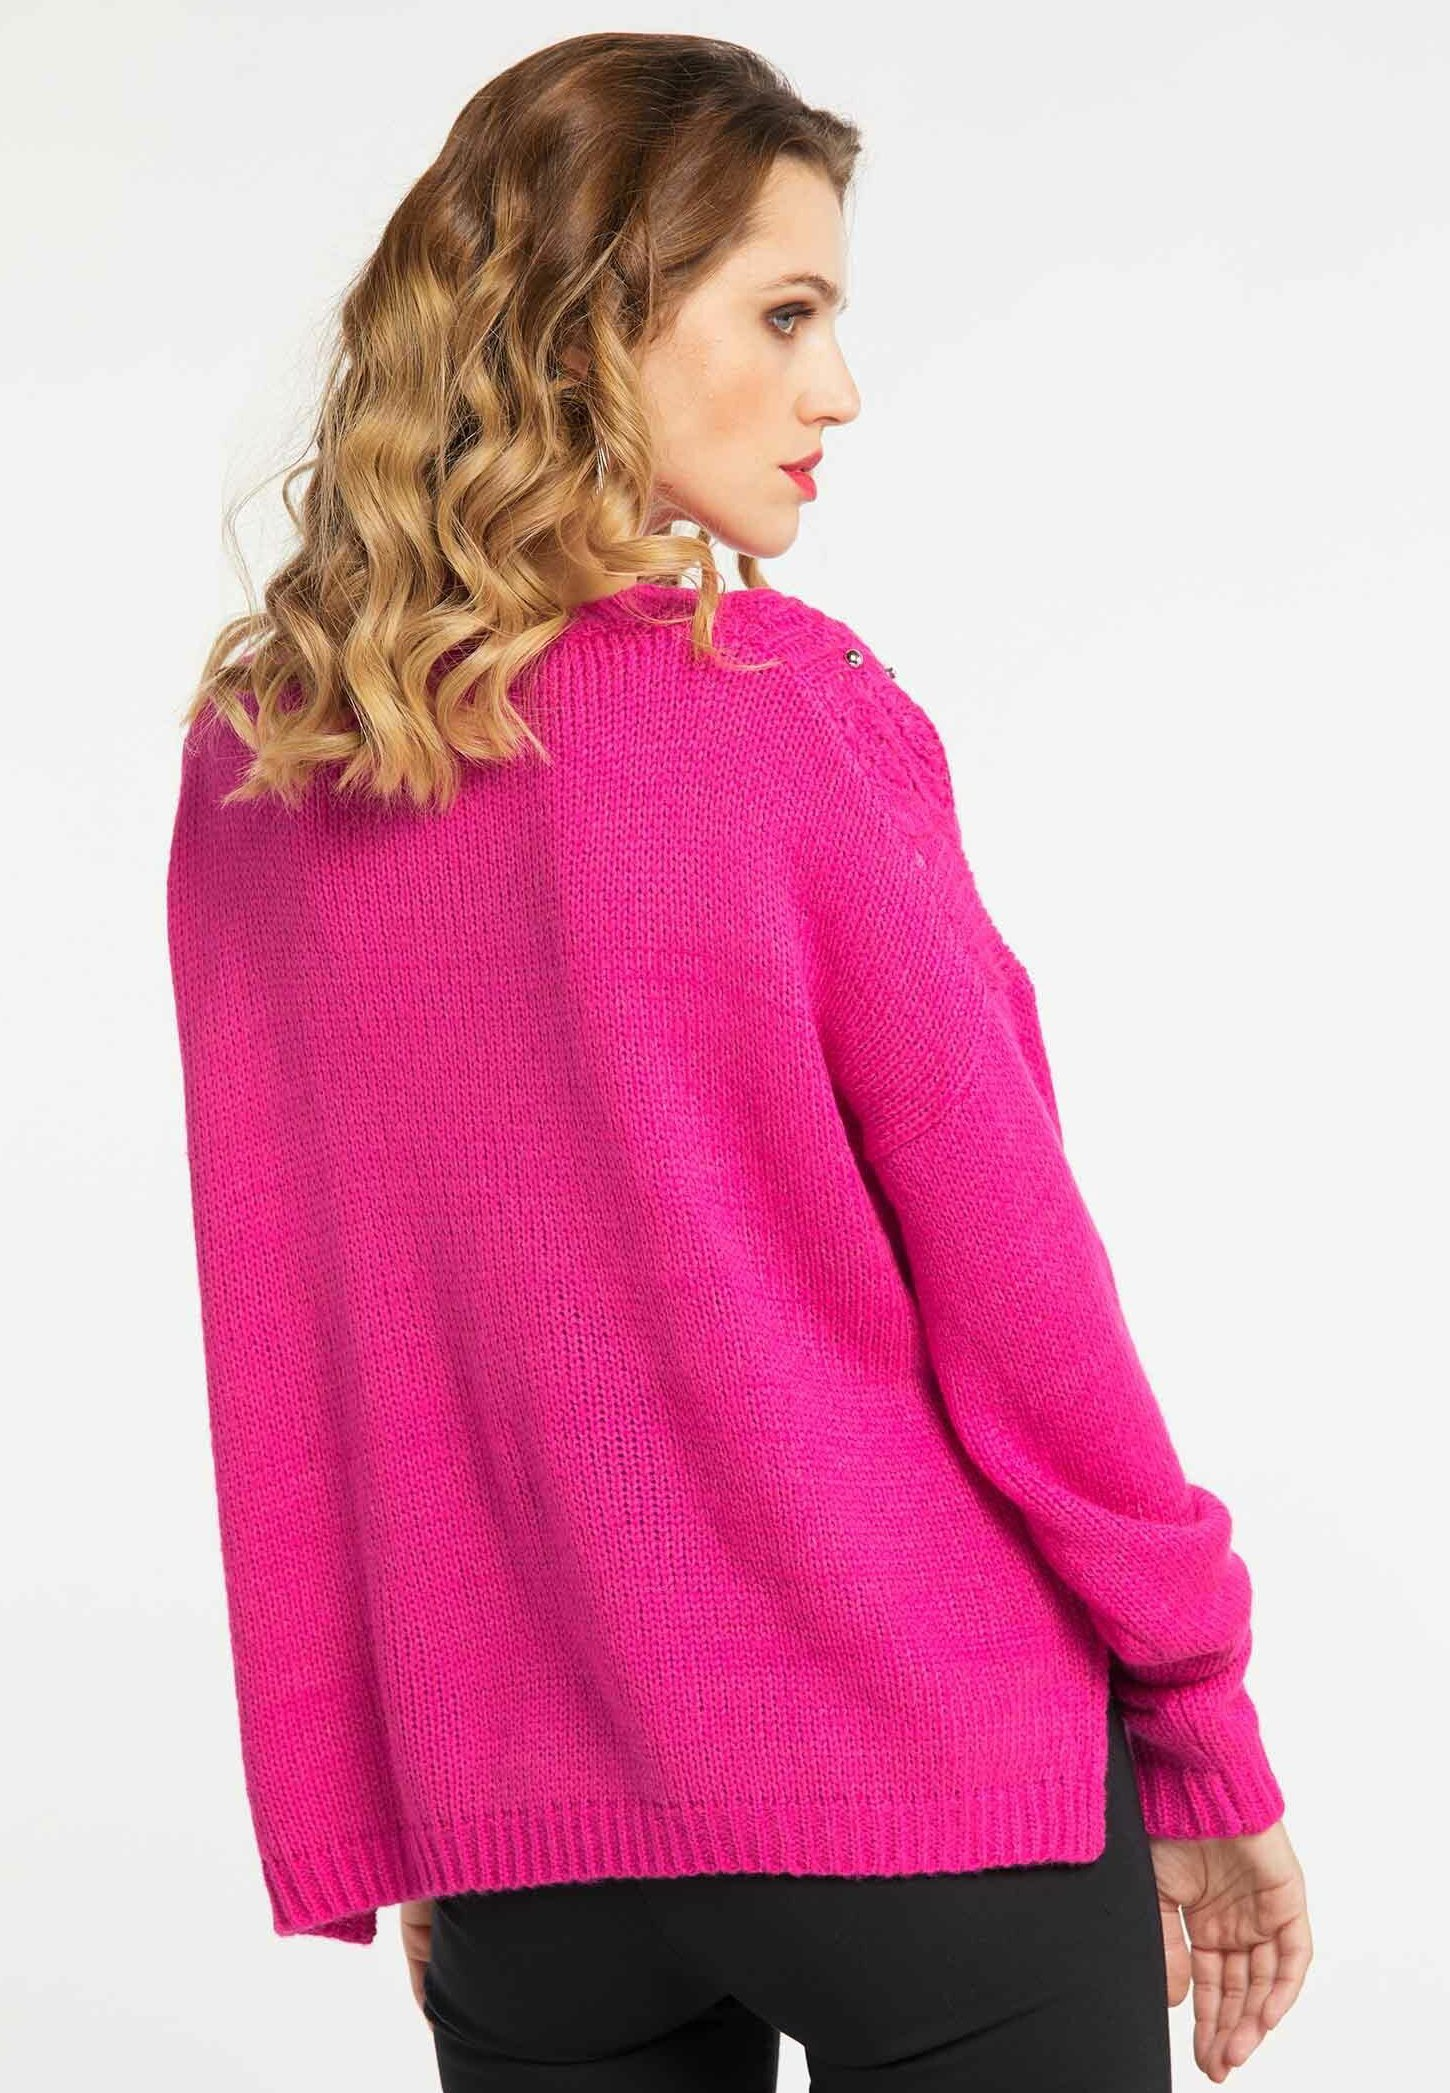 2020 Cool Women's Clothing faina Jumper pink ksxKmg0qs